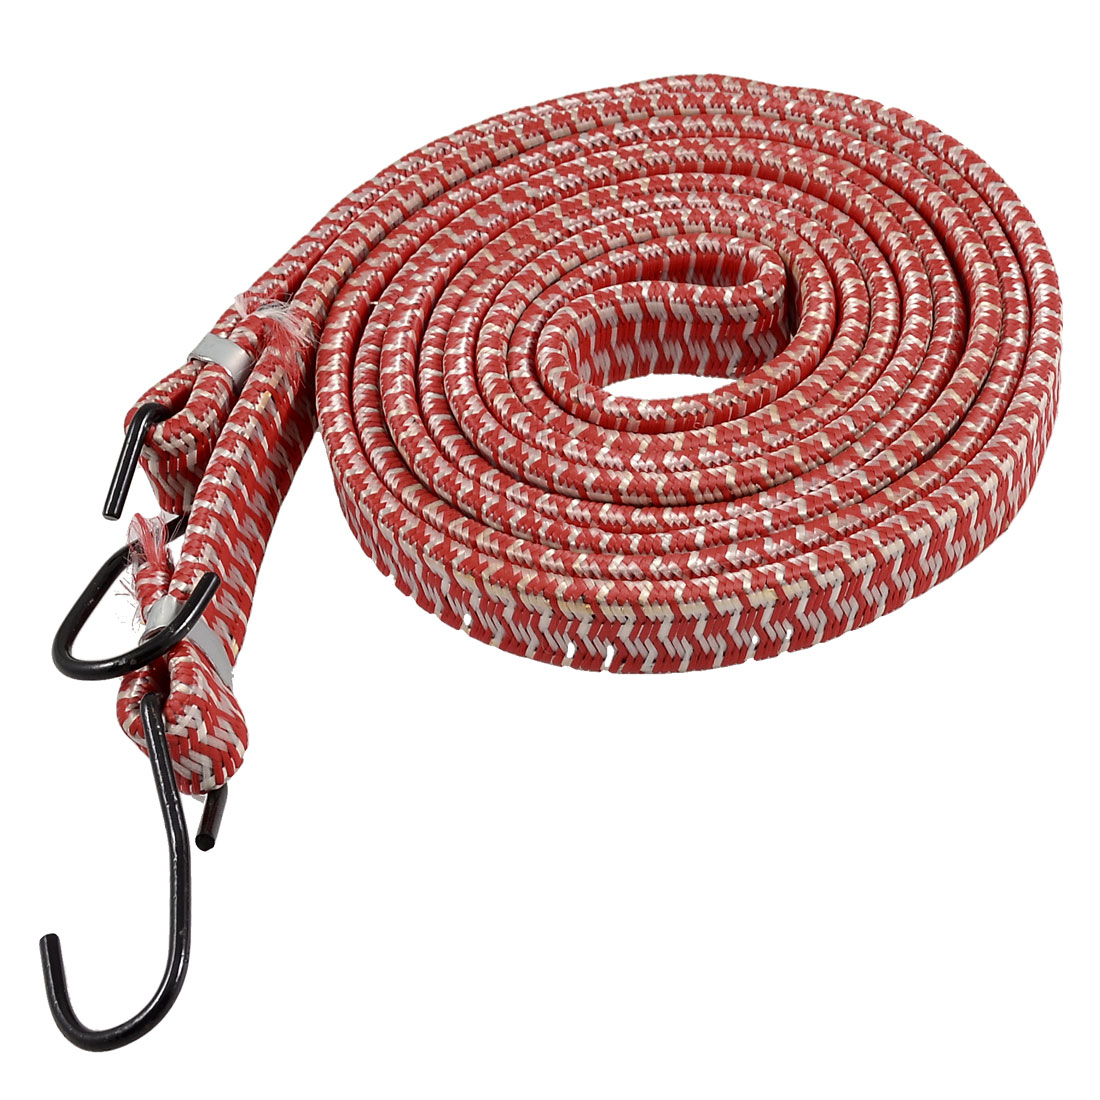 Bicycle Bike Dual Metal Hook Red Braided Stretchy Luggage Cord Rope 2.2M